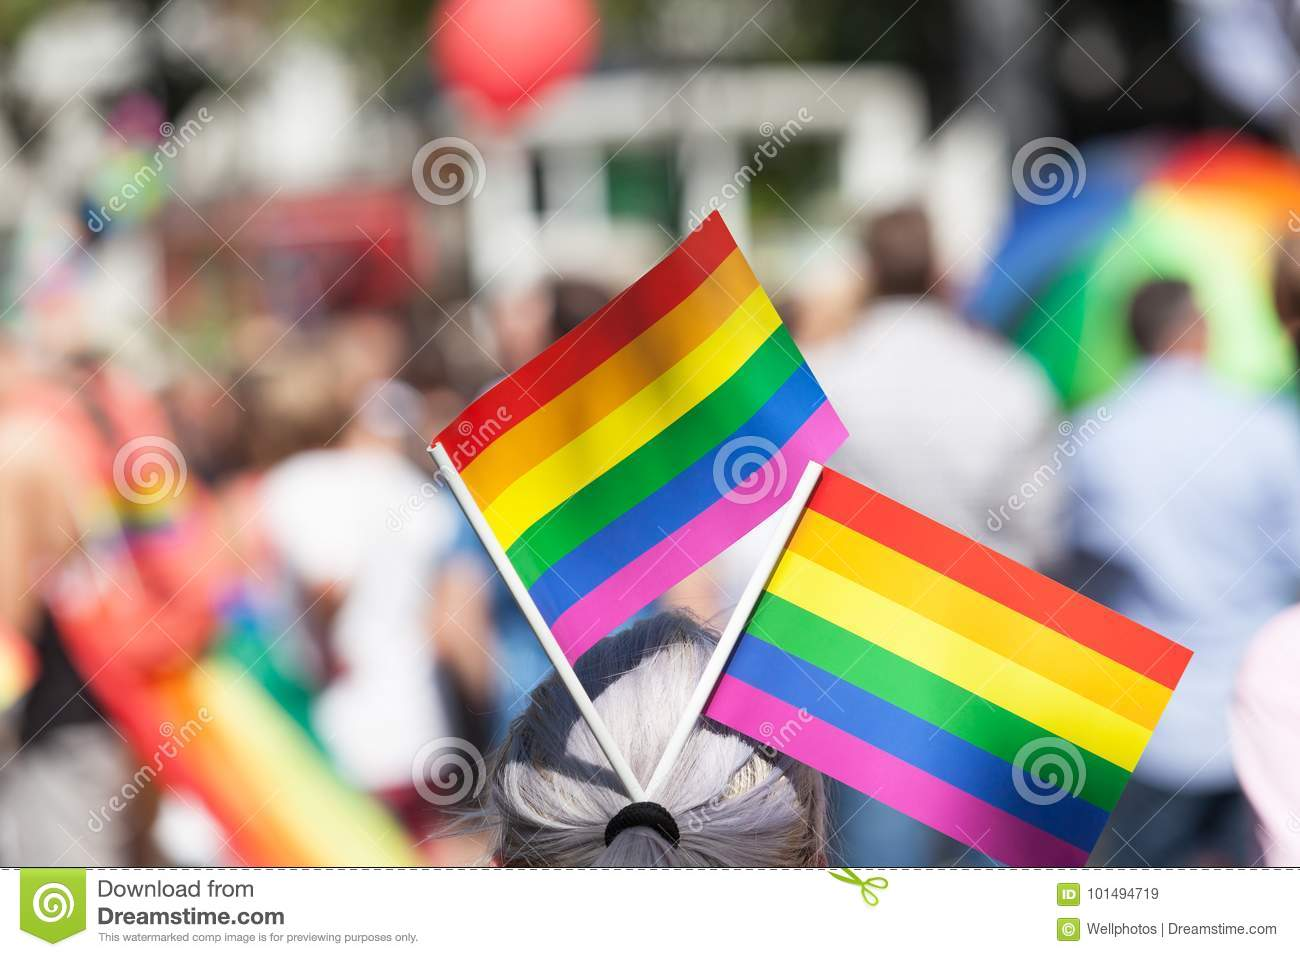 a03ac74cd483 Lgbt Stock Images - Download 17